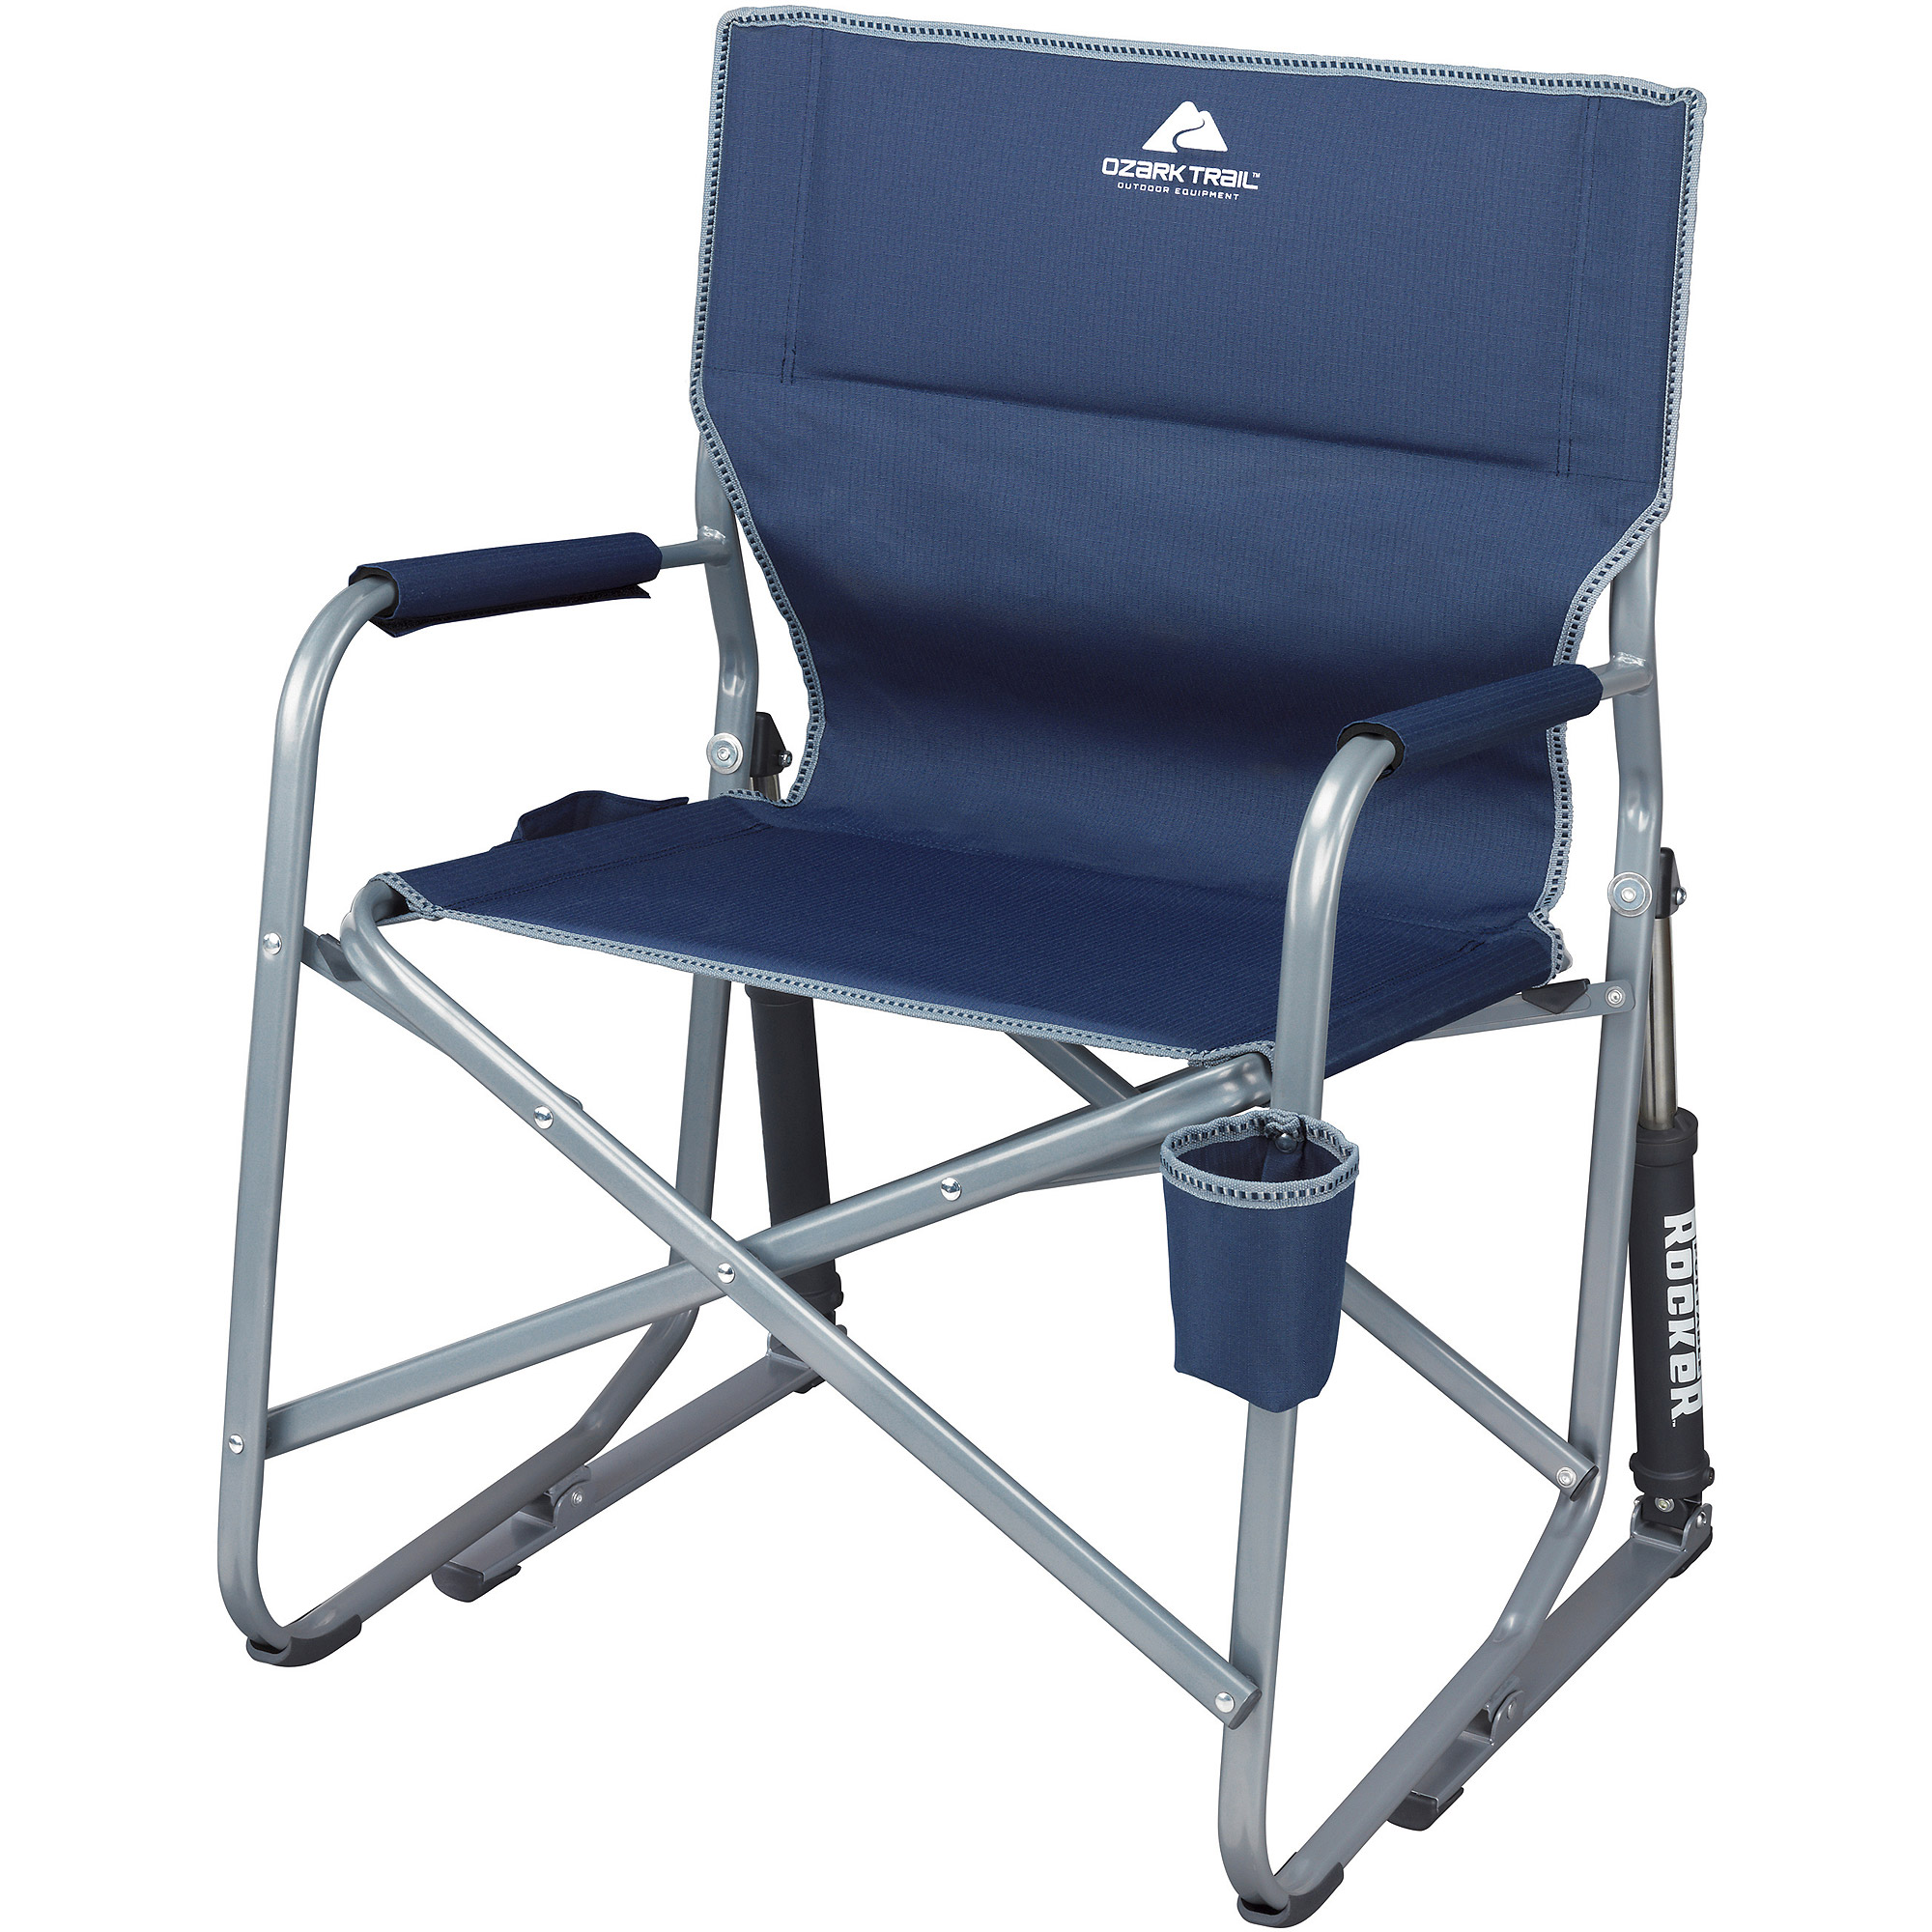 Merveilleux Ozark Trail Portable Rocking Chair